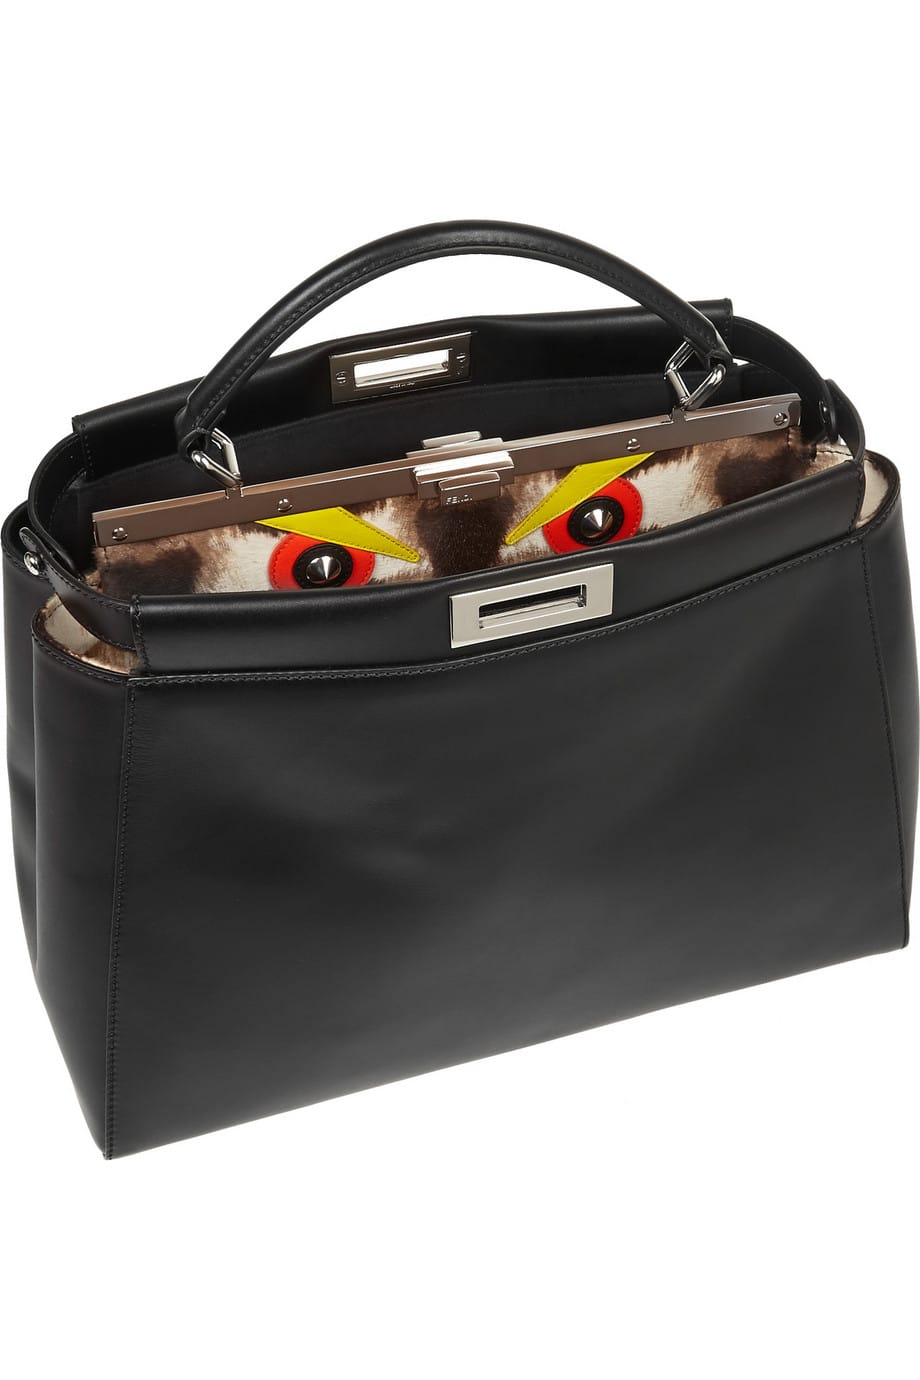 91c83d7346c8 Spotted  Net-a-Porter has a Limited Edition Fendi Bag Bug Peekaboo ...